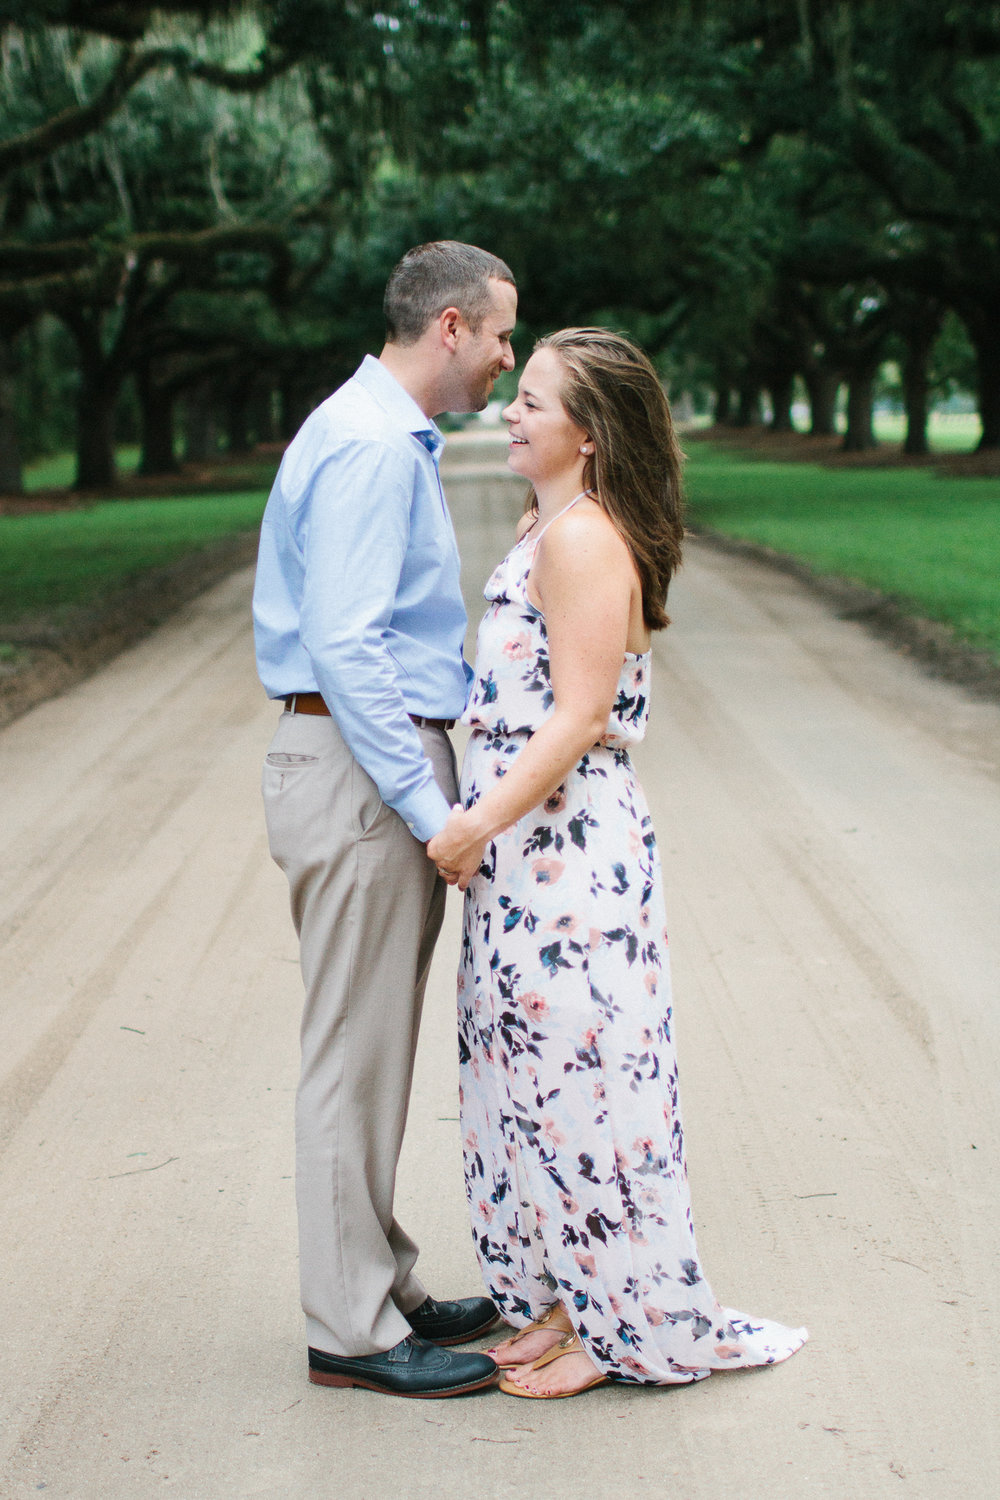 Engaged couple at Boone Hall Plantation, Charleston South Carolina by Danielle Gallo Photography